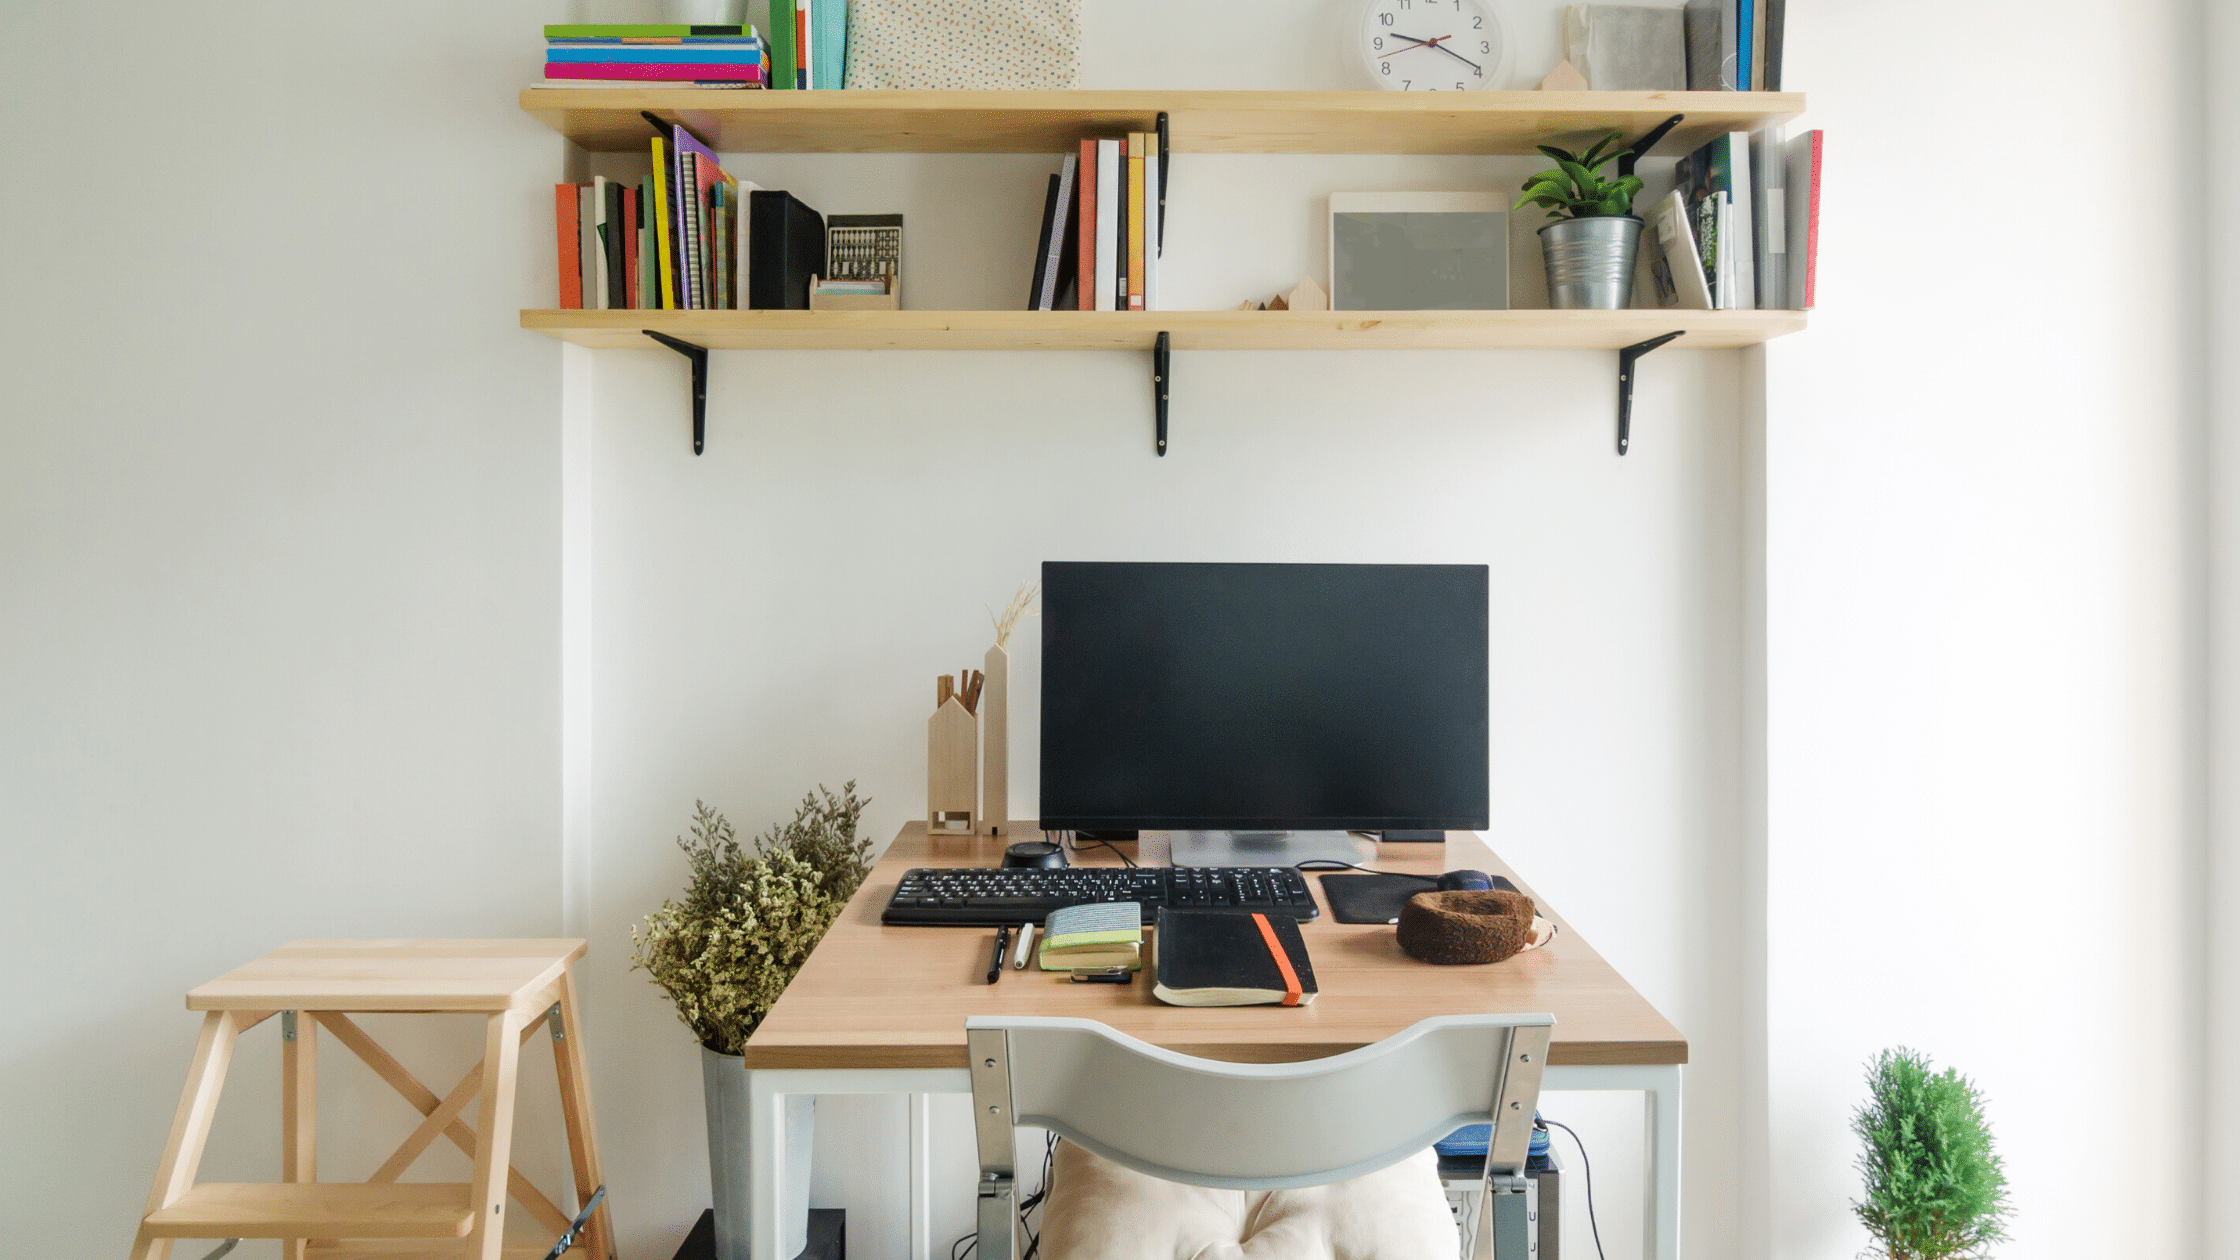 personal computer in a wooden table with indoor plants and notebooks